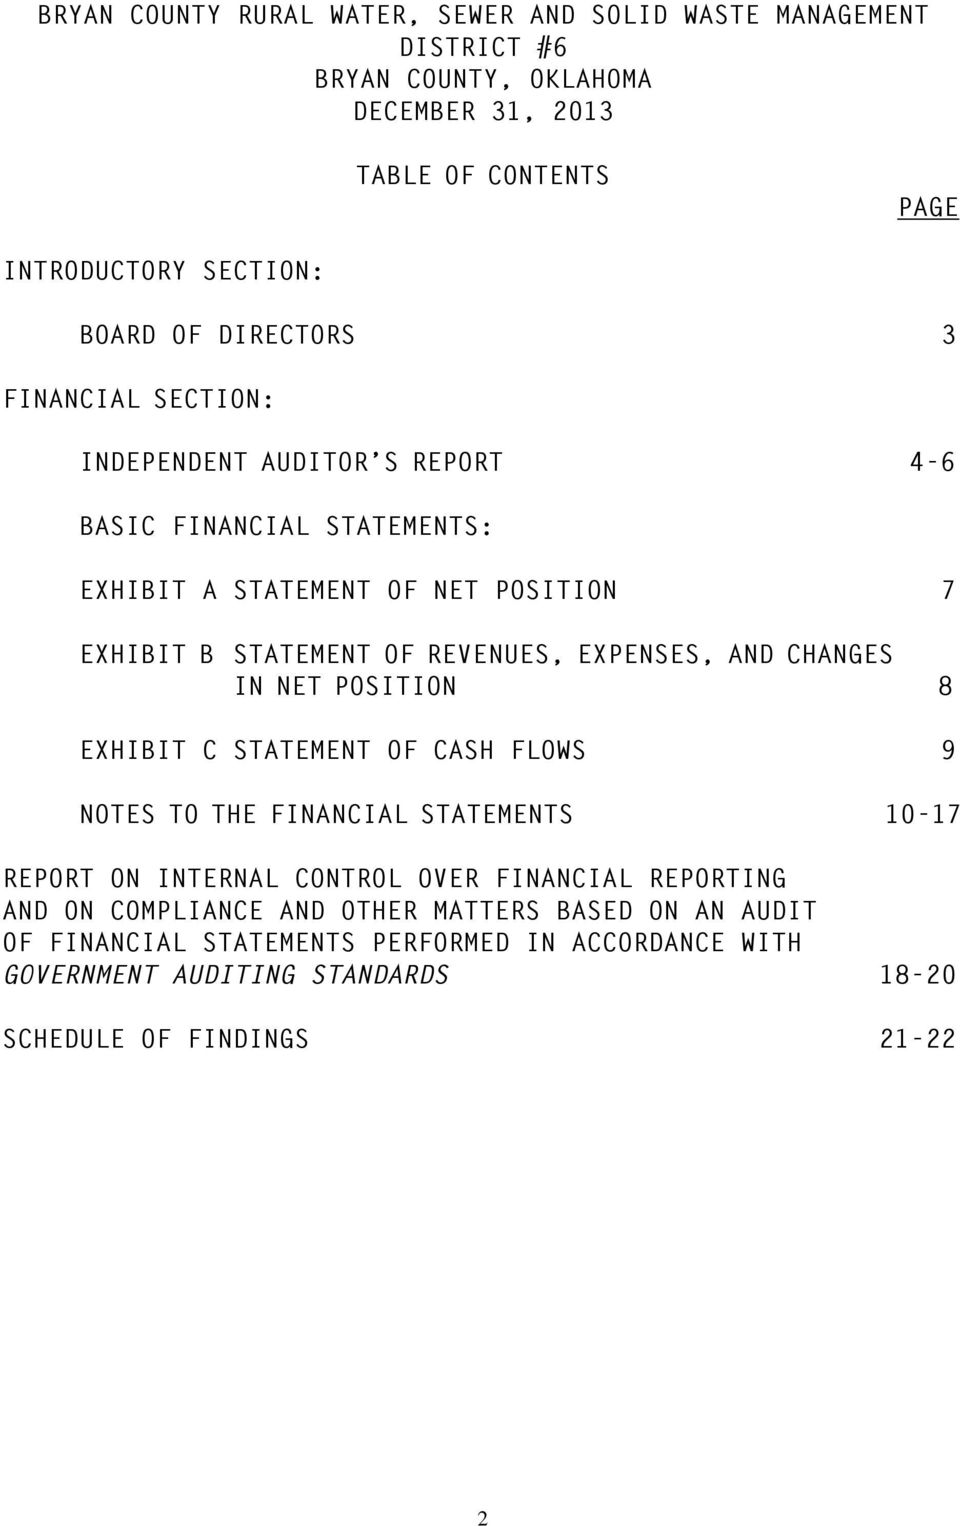 STATEMENT OF CASH FLOWS 9 NOTES TO THE FINANCIAL STATEMENTS 10-17 REPORT ON INTERNAL CONTROL OVER FINANCIAL REPORTING AND ON COMPLIANCE